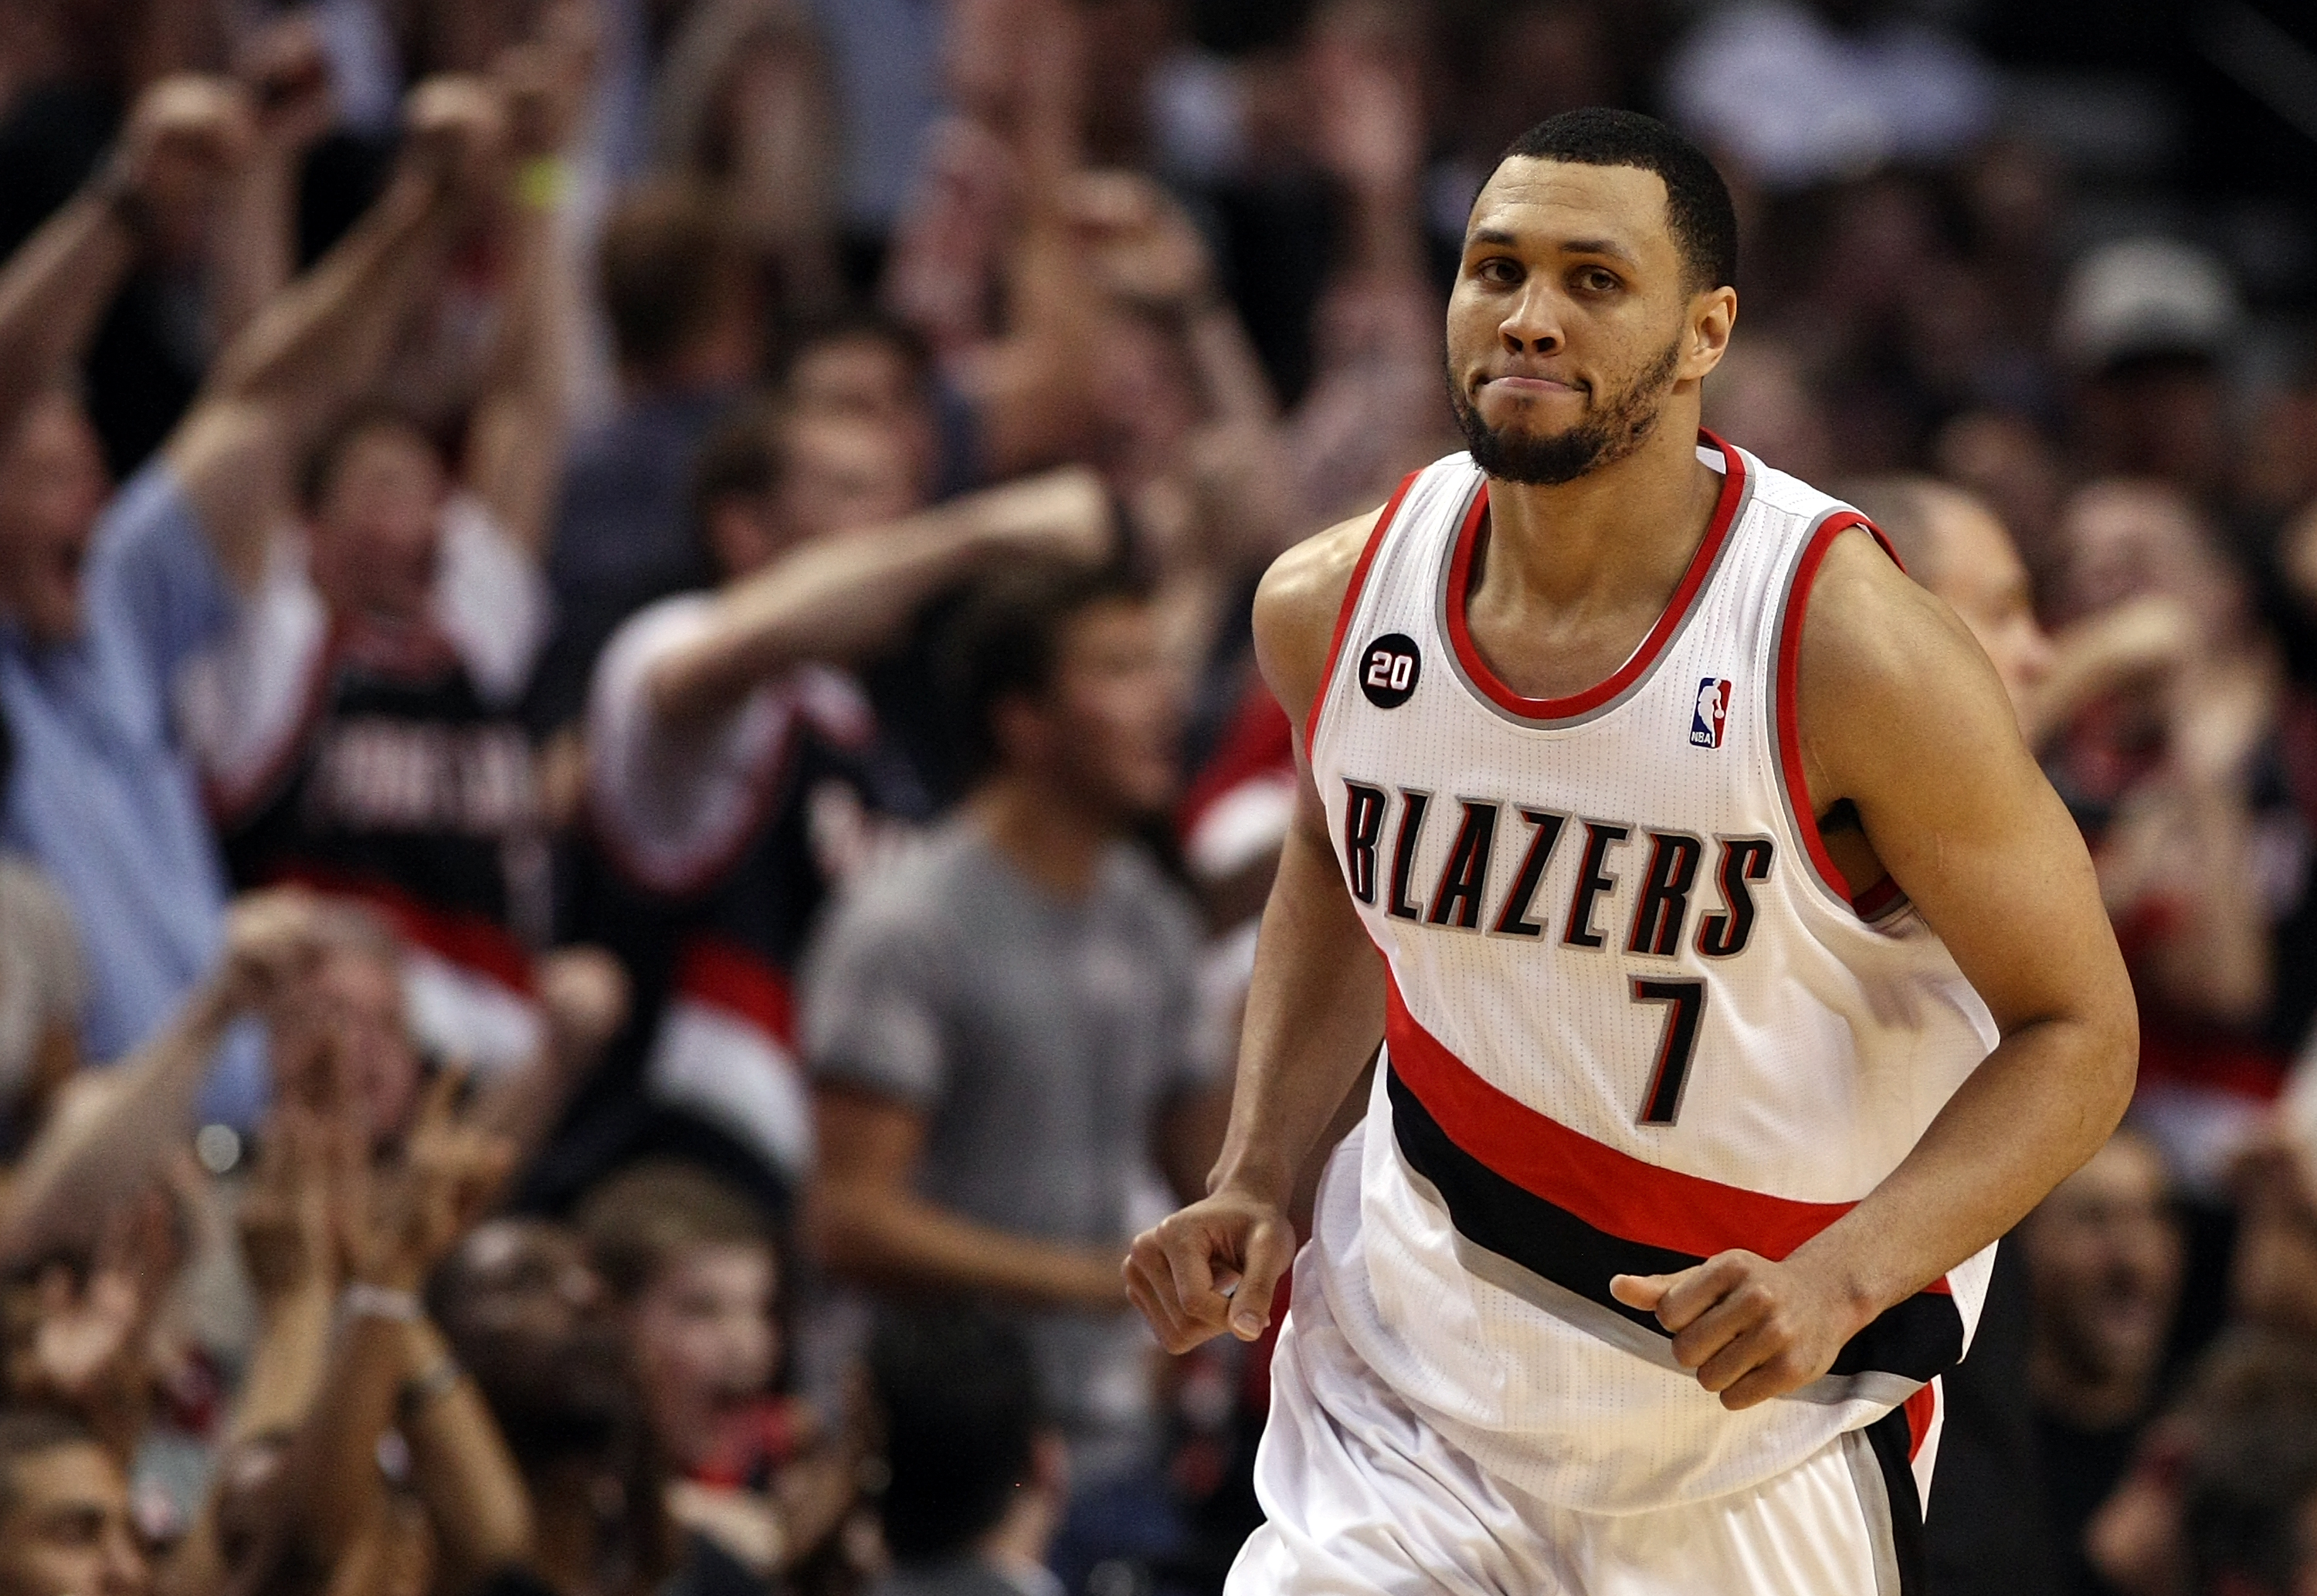 Brandon Roy shot, Brandon Roy, Brandon Roy injury